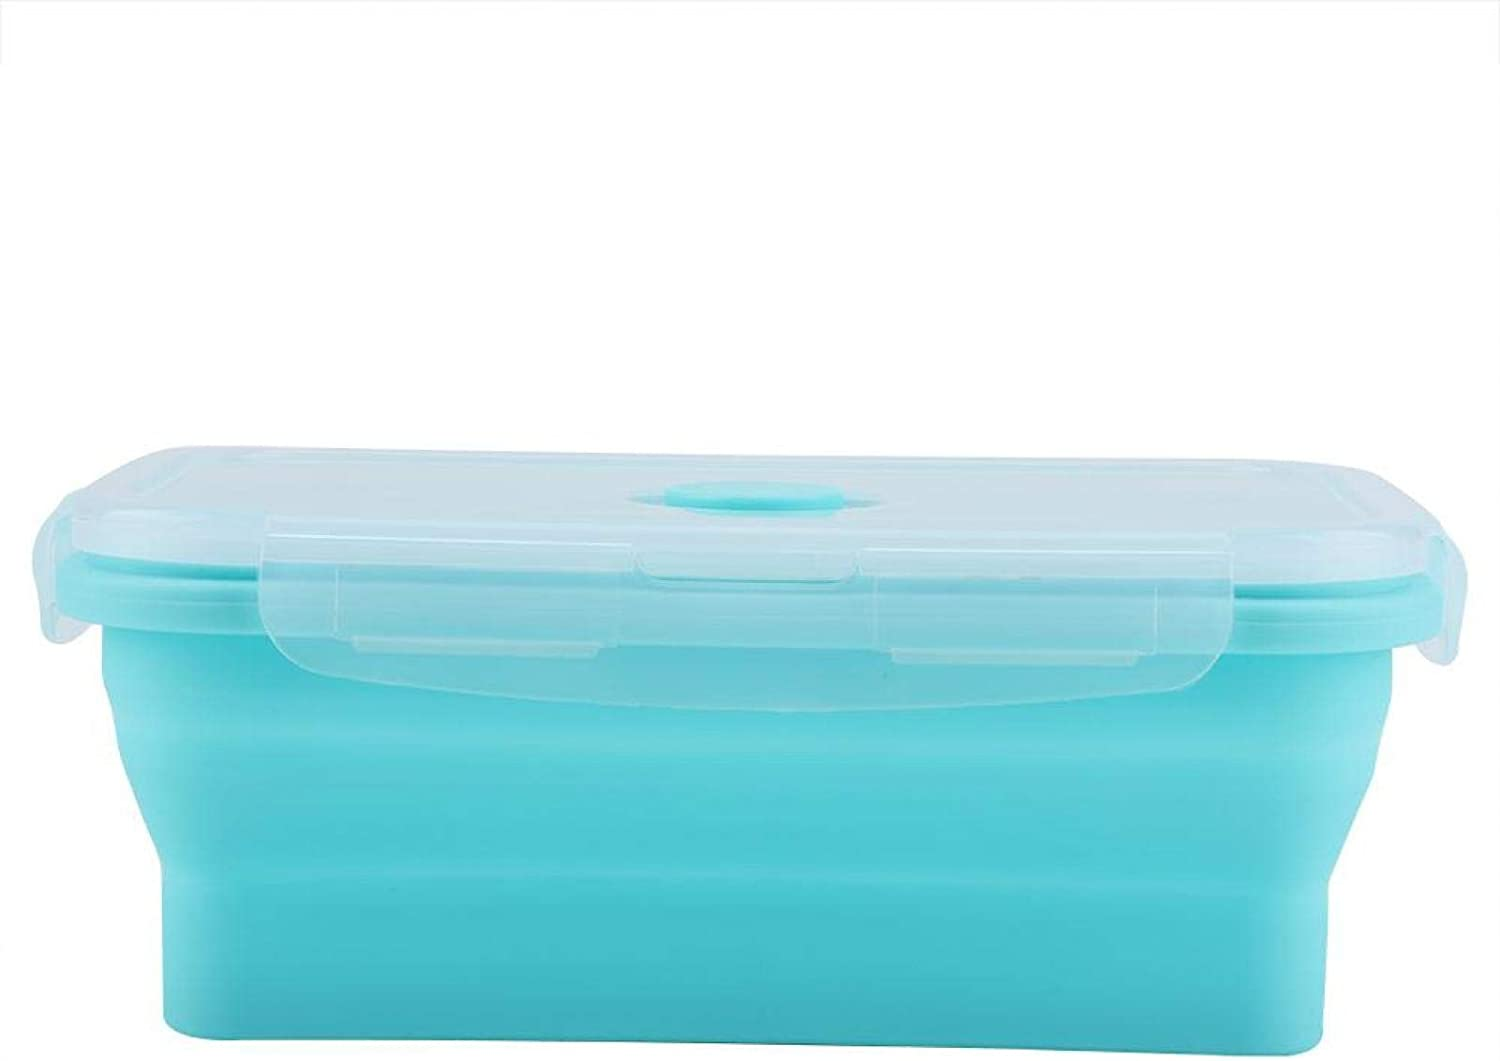 Silicone Lunch Box-4 Size Portable Silicone Lunch Box Folding Microwave Safe Lunchbox Food Container(1200ml-Green)